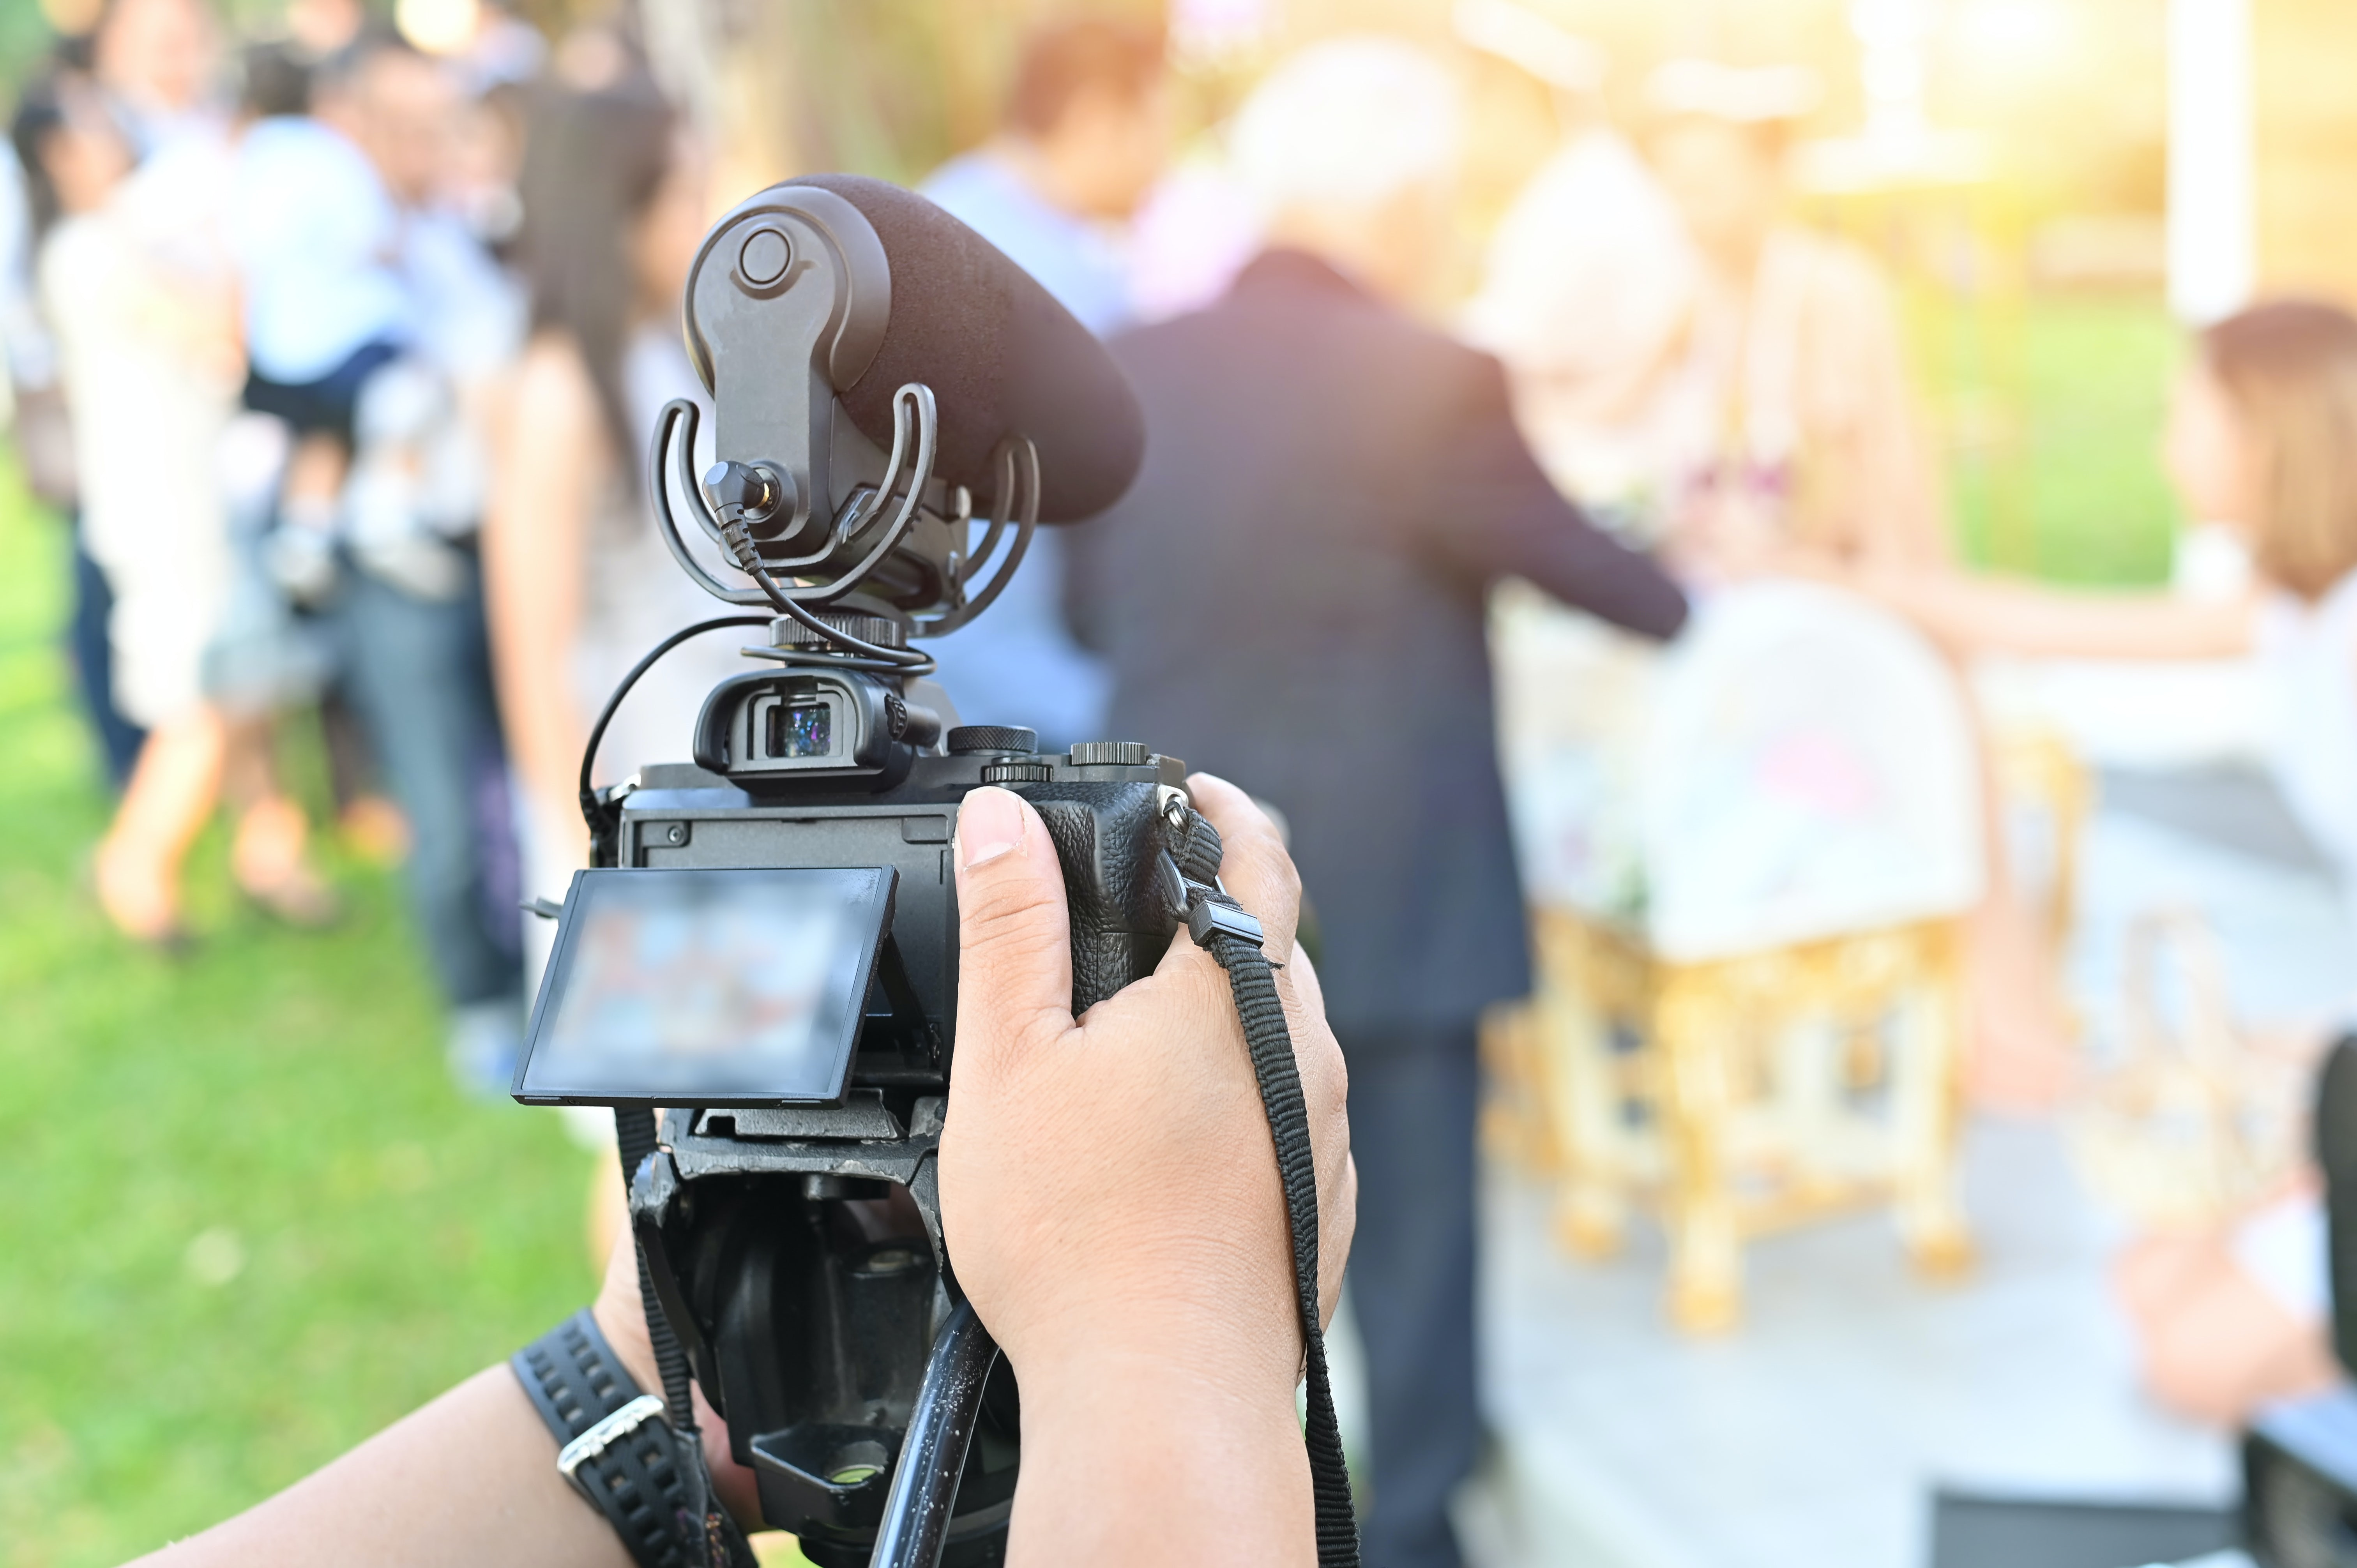 The best videographers report